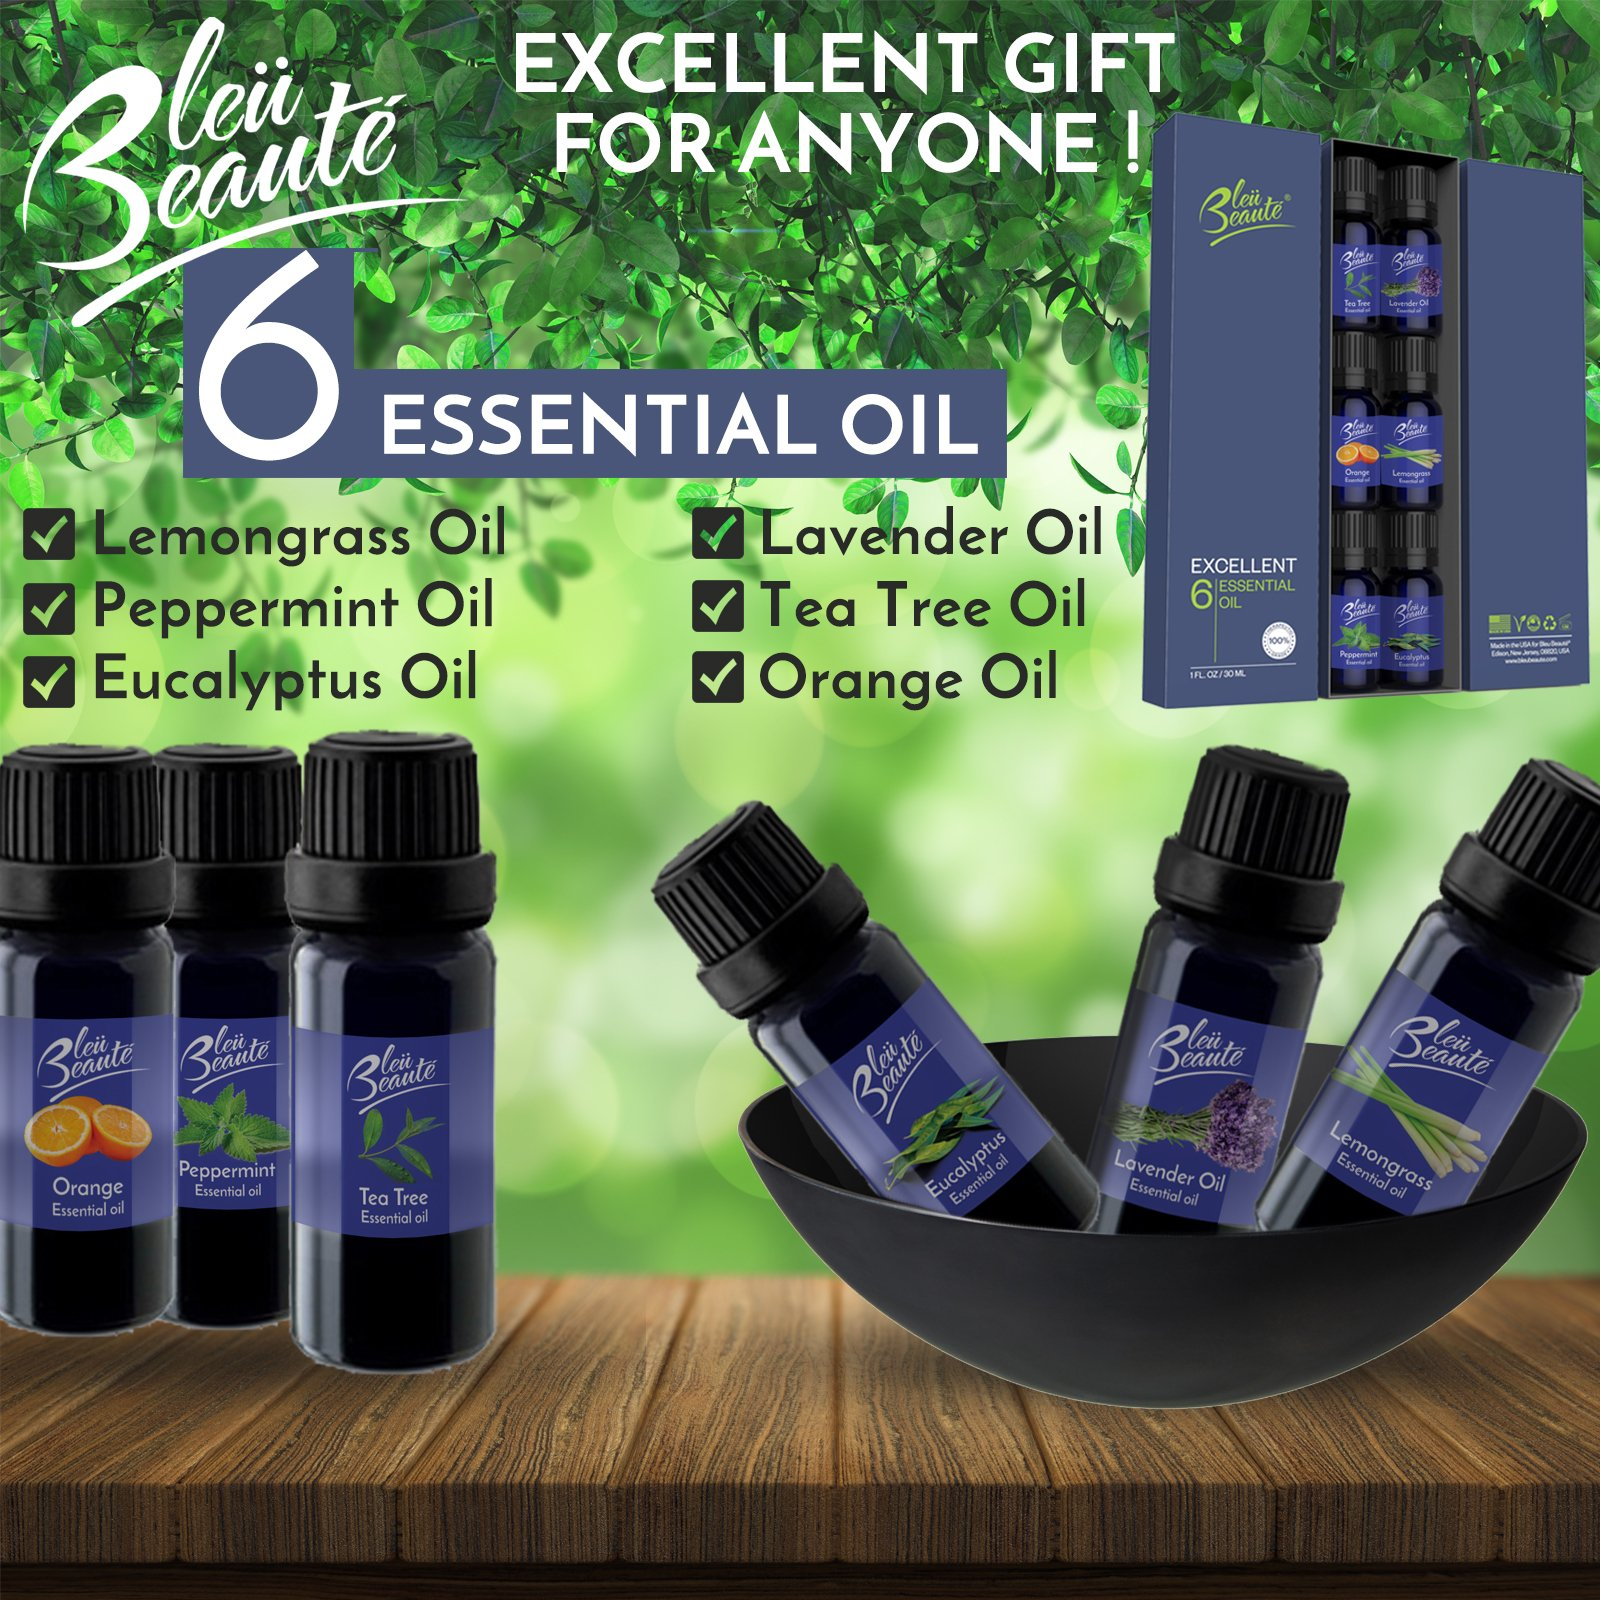 100% Pure - Excellent Gift set of Essential Oils (Pack of 6) for daily and travel use. Therapeutic Grade of 10 ml - Lavender, Tea Tree, Eucalyptus, Peppermint, Lemongrass, Sweet Orange